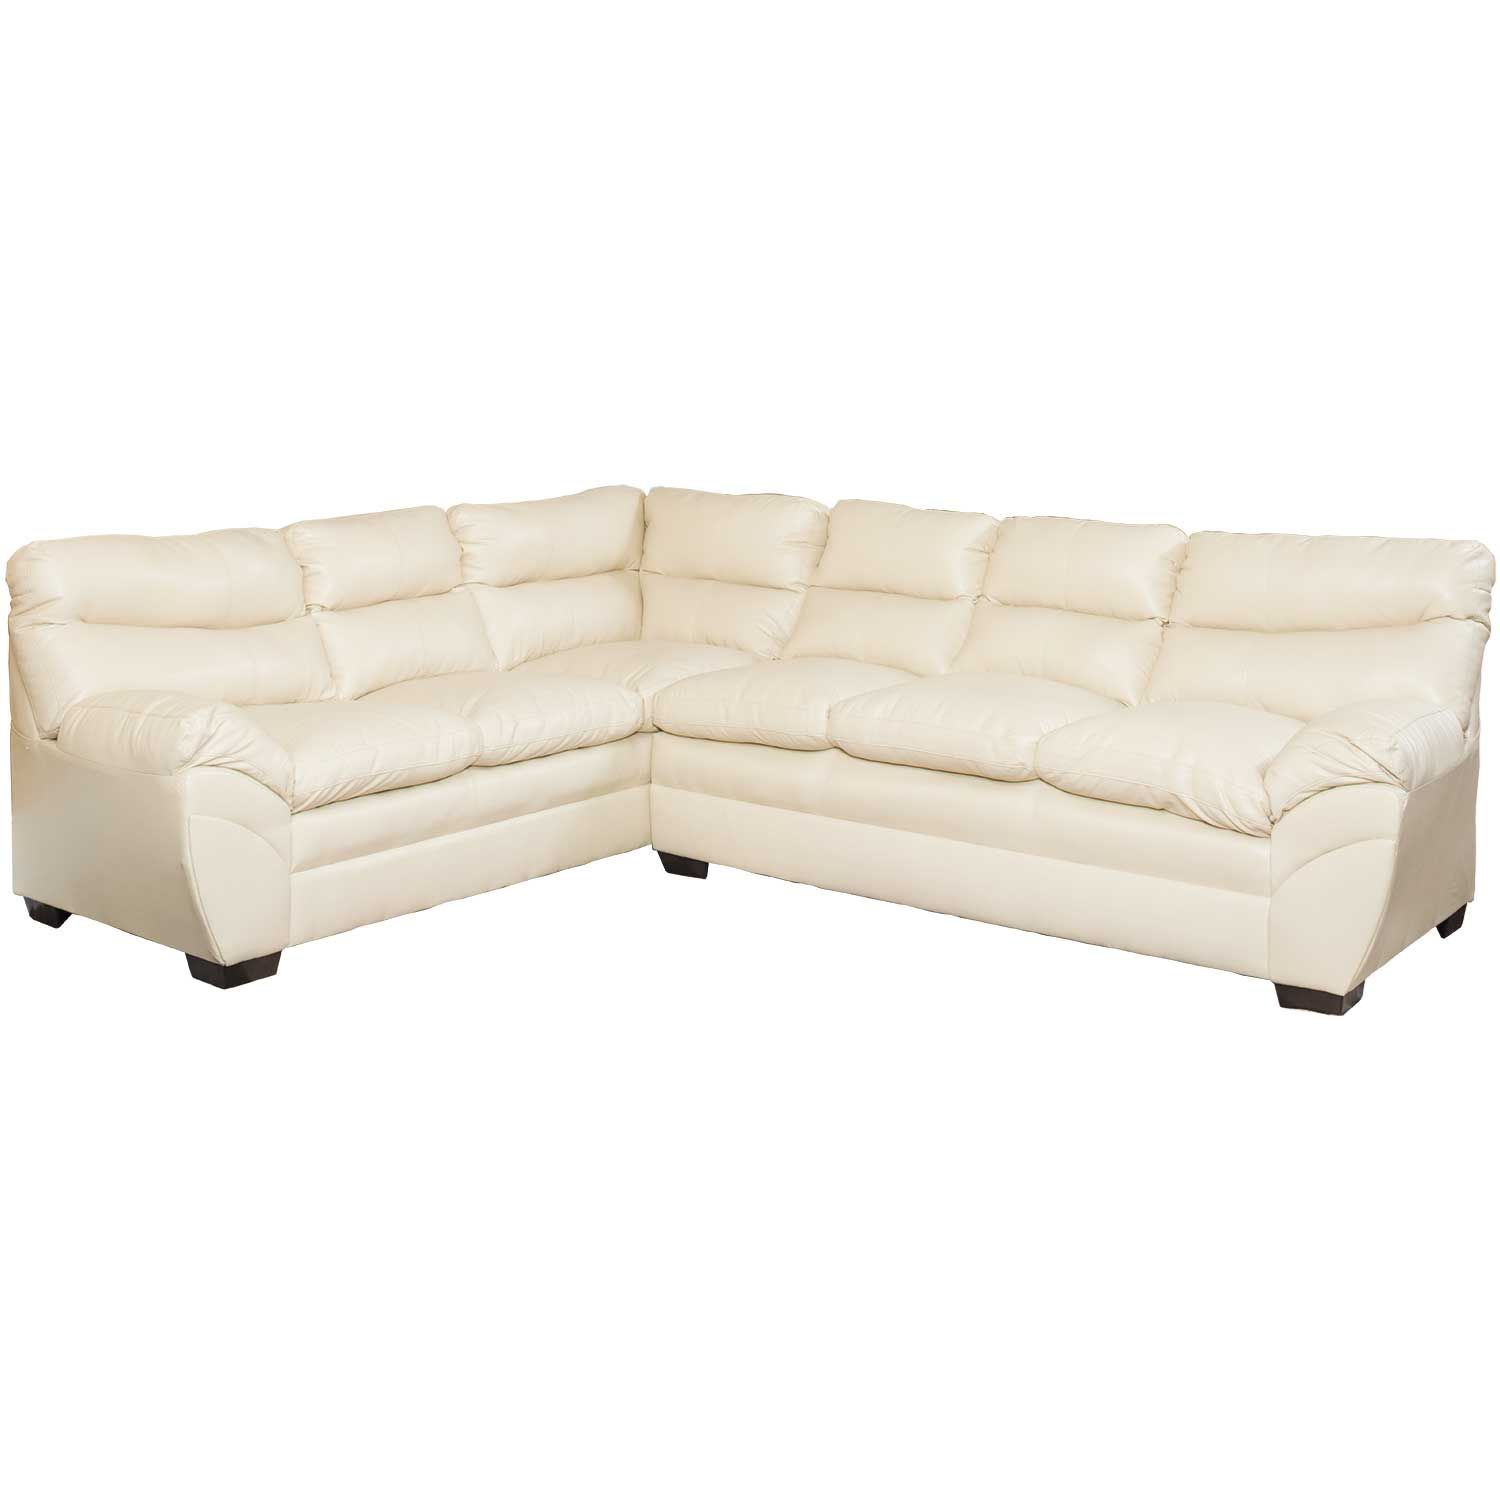 Soho 2 Piece Cream Bonded Leather Sectional 9515 Rs Ls